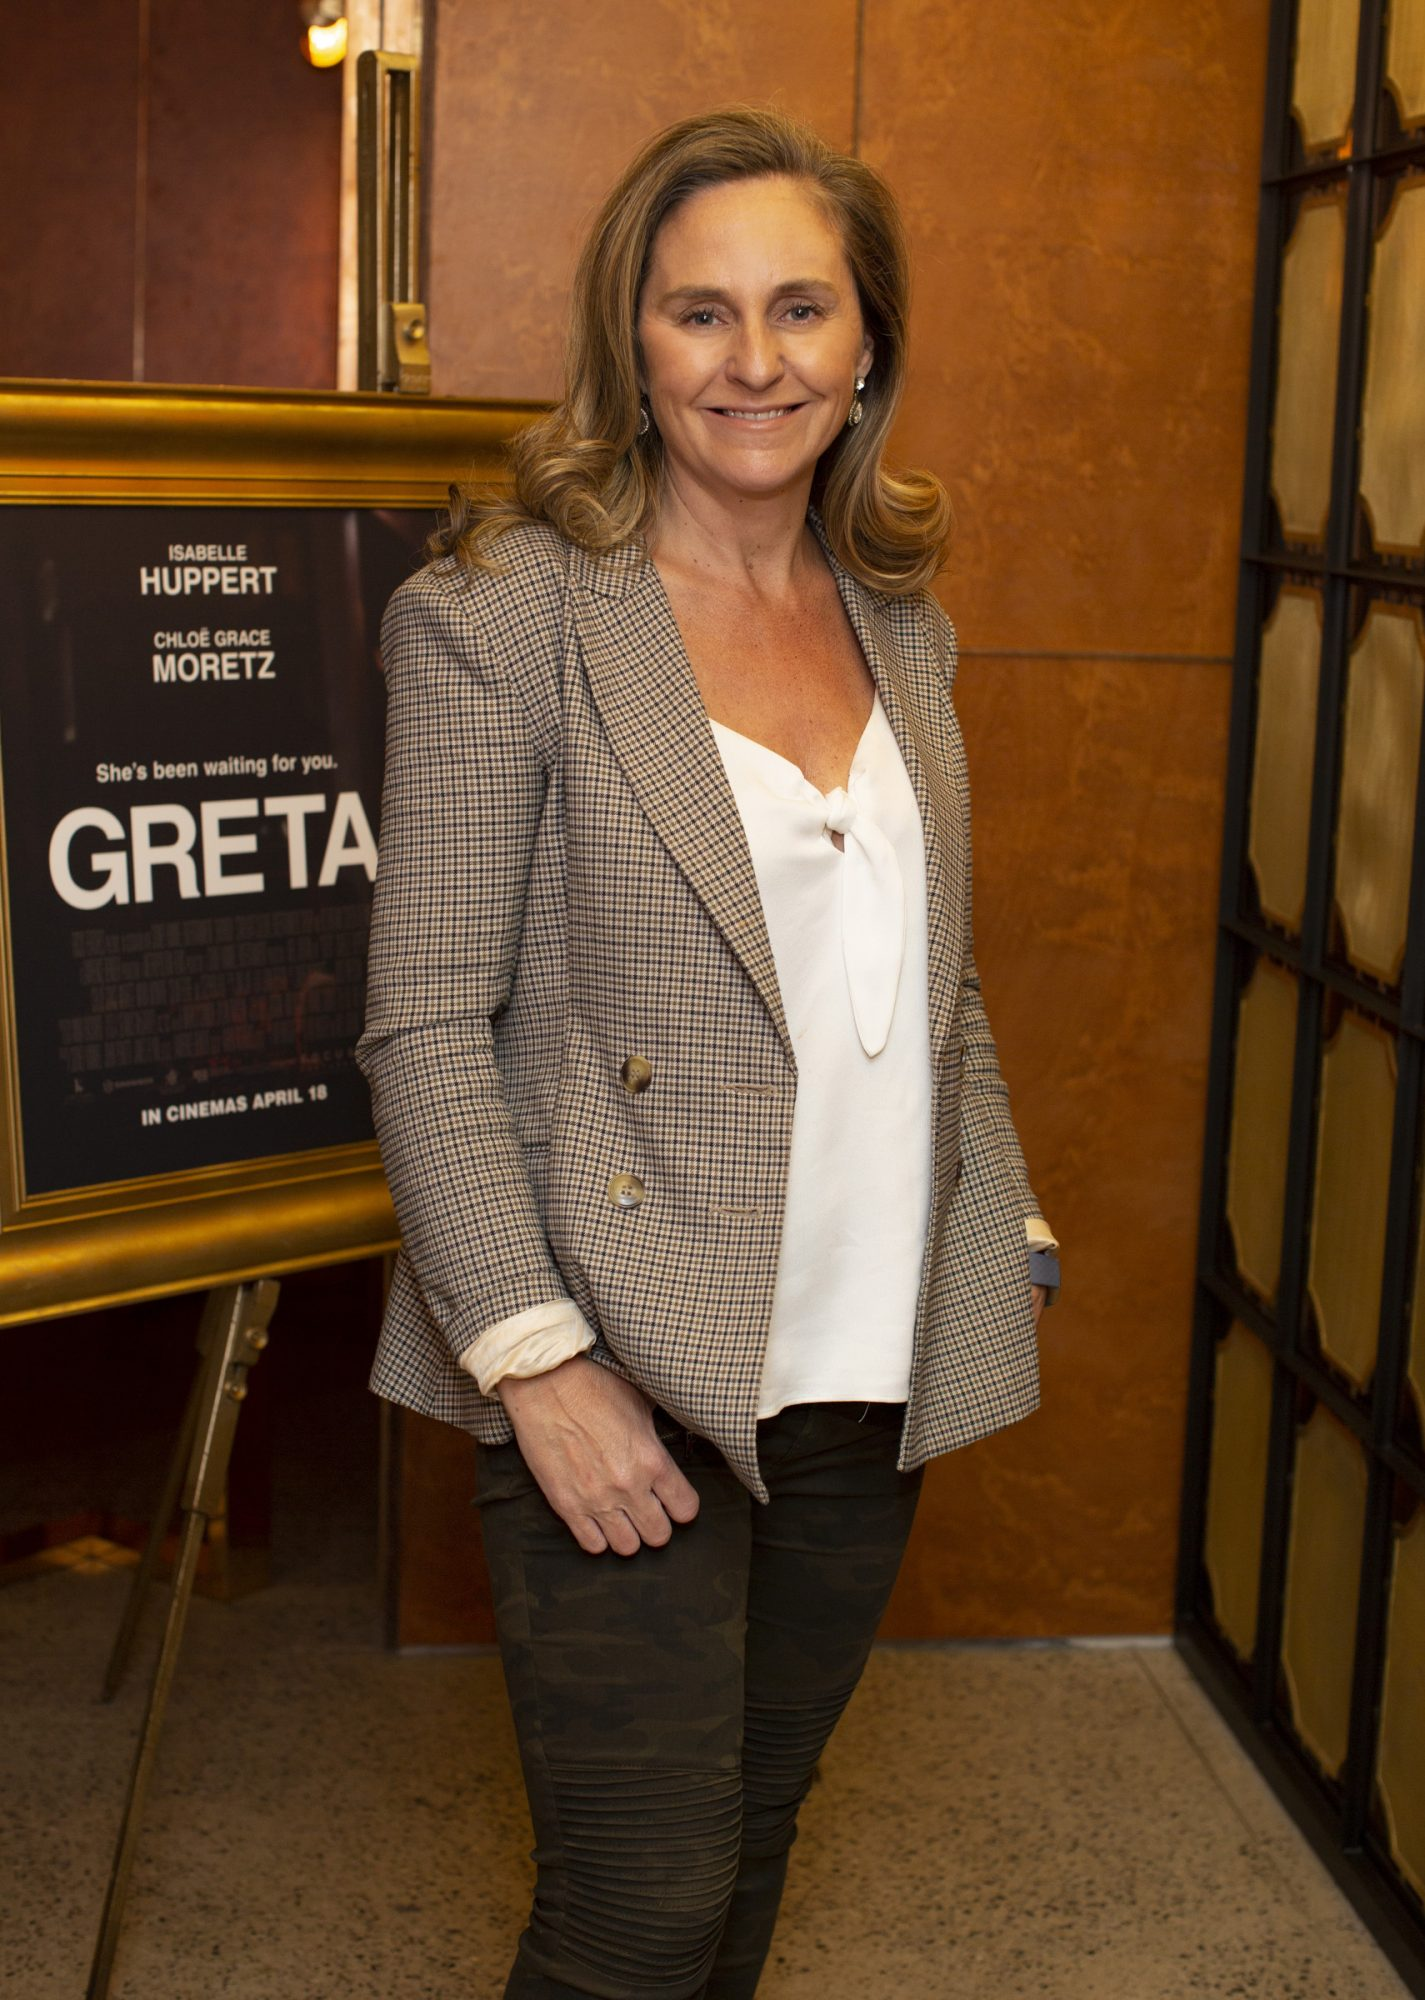 Debbie O'Donnell pictured at a special preview screening of GRETA at The Stella Theatre, Ranelagh. GRETA, directed by Academy Award®-winner Neil Jordan and starring Chloë Grace Moretz and Isabelle Huppert, hits cinemas across Ireland this Thursday 18th April. Photo: Anthony Woods